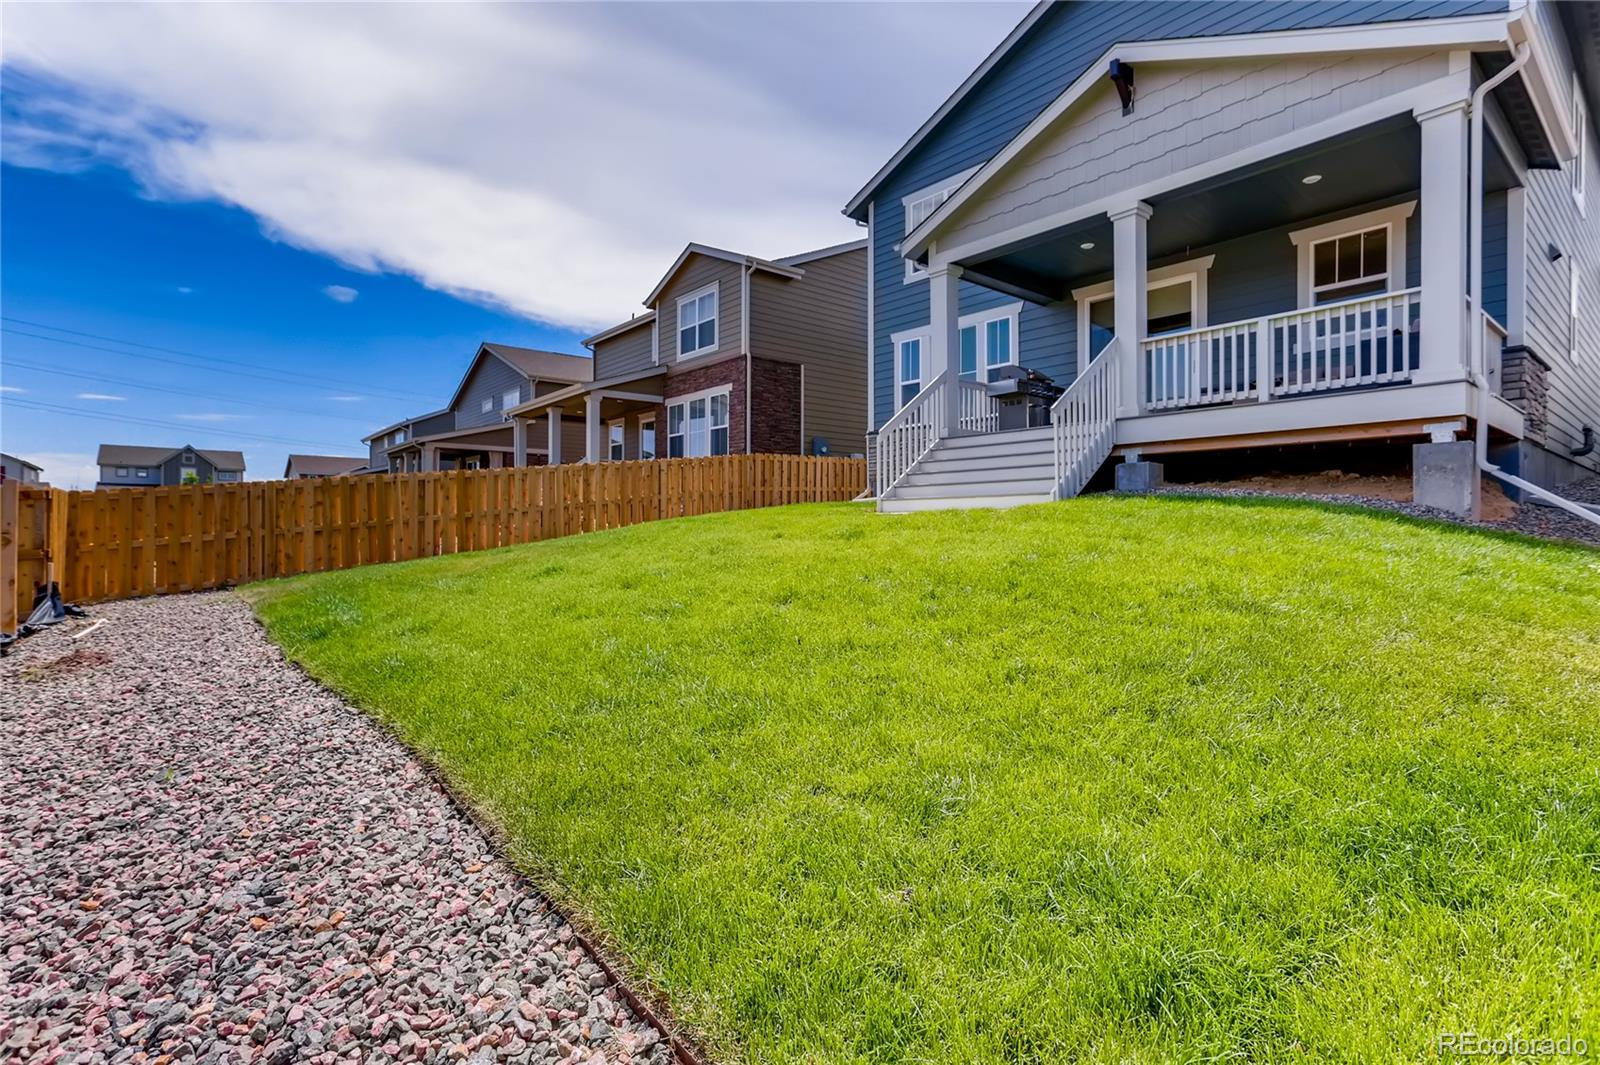 MLS# 2145354 - 28 - 26325 E Canal Place, Aurora, CO 80018